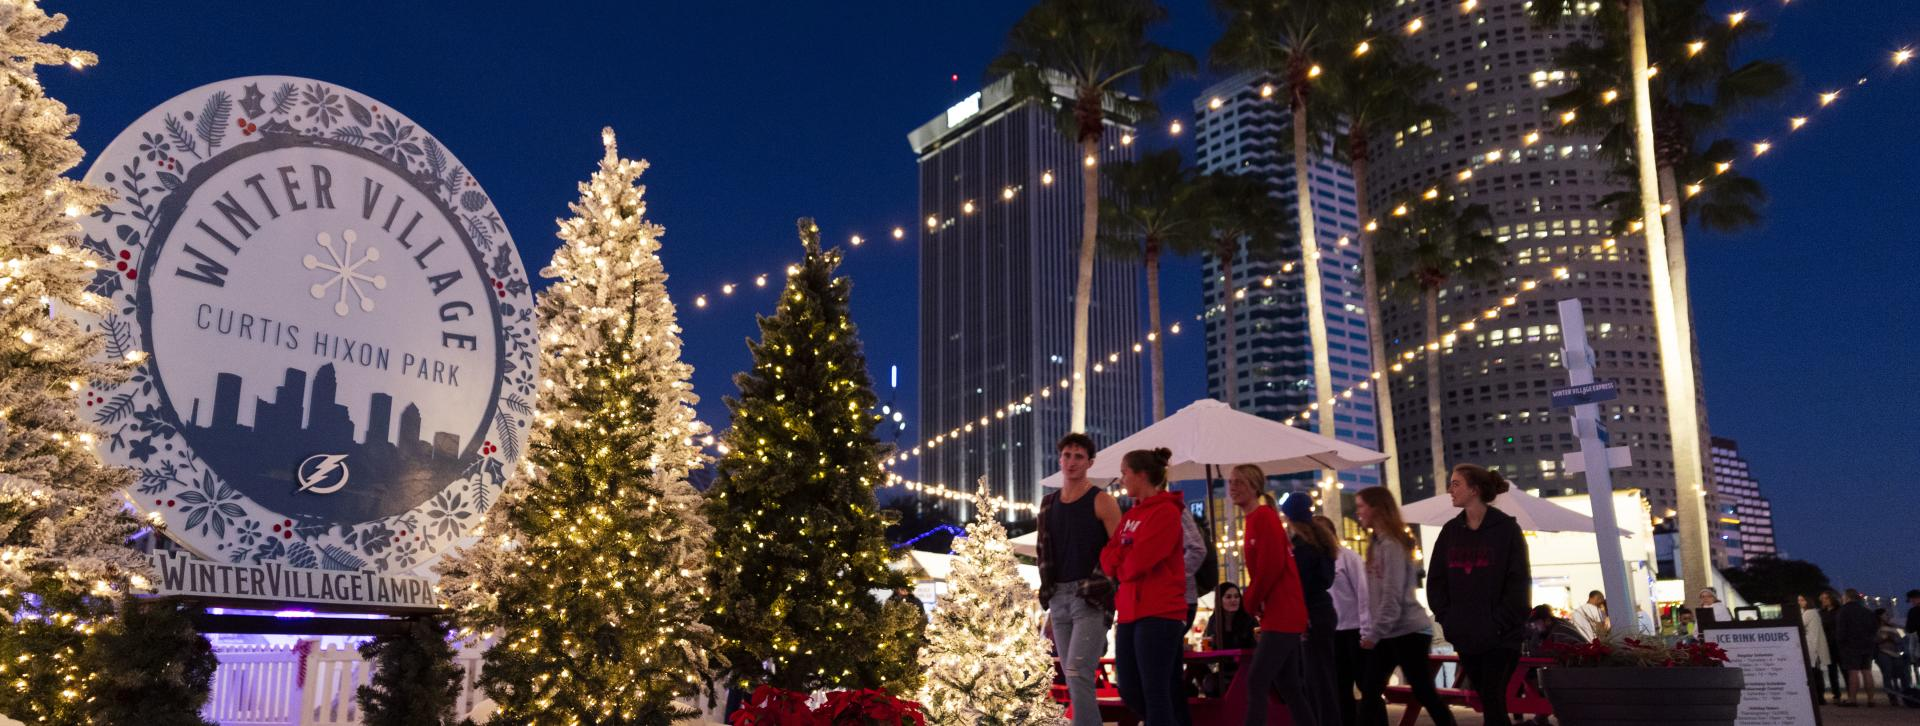 Christmas Dinner Restaurants In Tampa 2020 Holiday Season and New Year's Events